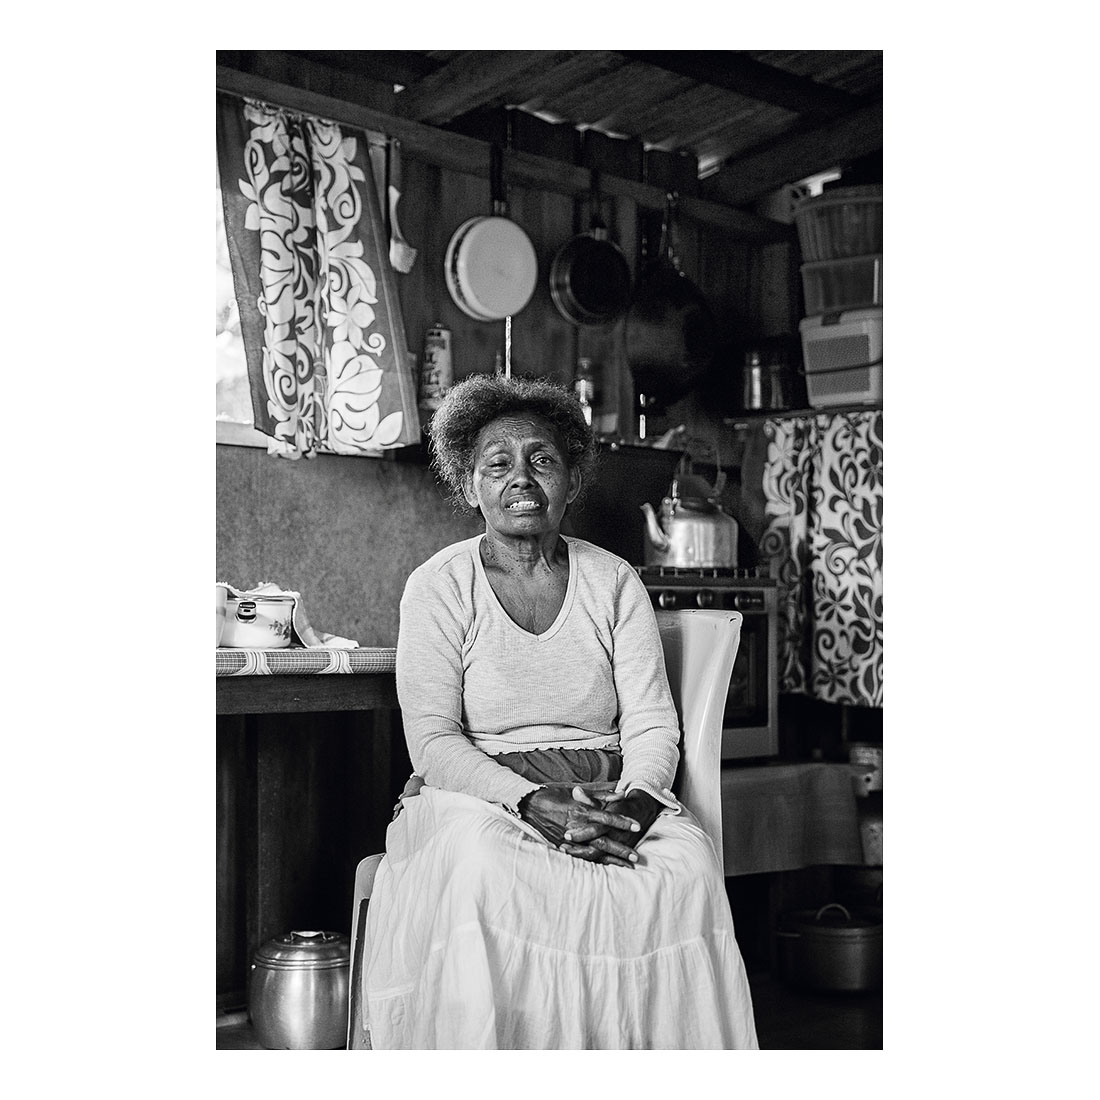 #30 Namo Lae Lae, Malaita, Solomon Islands  (2016).  Archival pigment print on Ilford paper. Exhibition print 36cm x 24cm. Different sizes available.